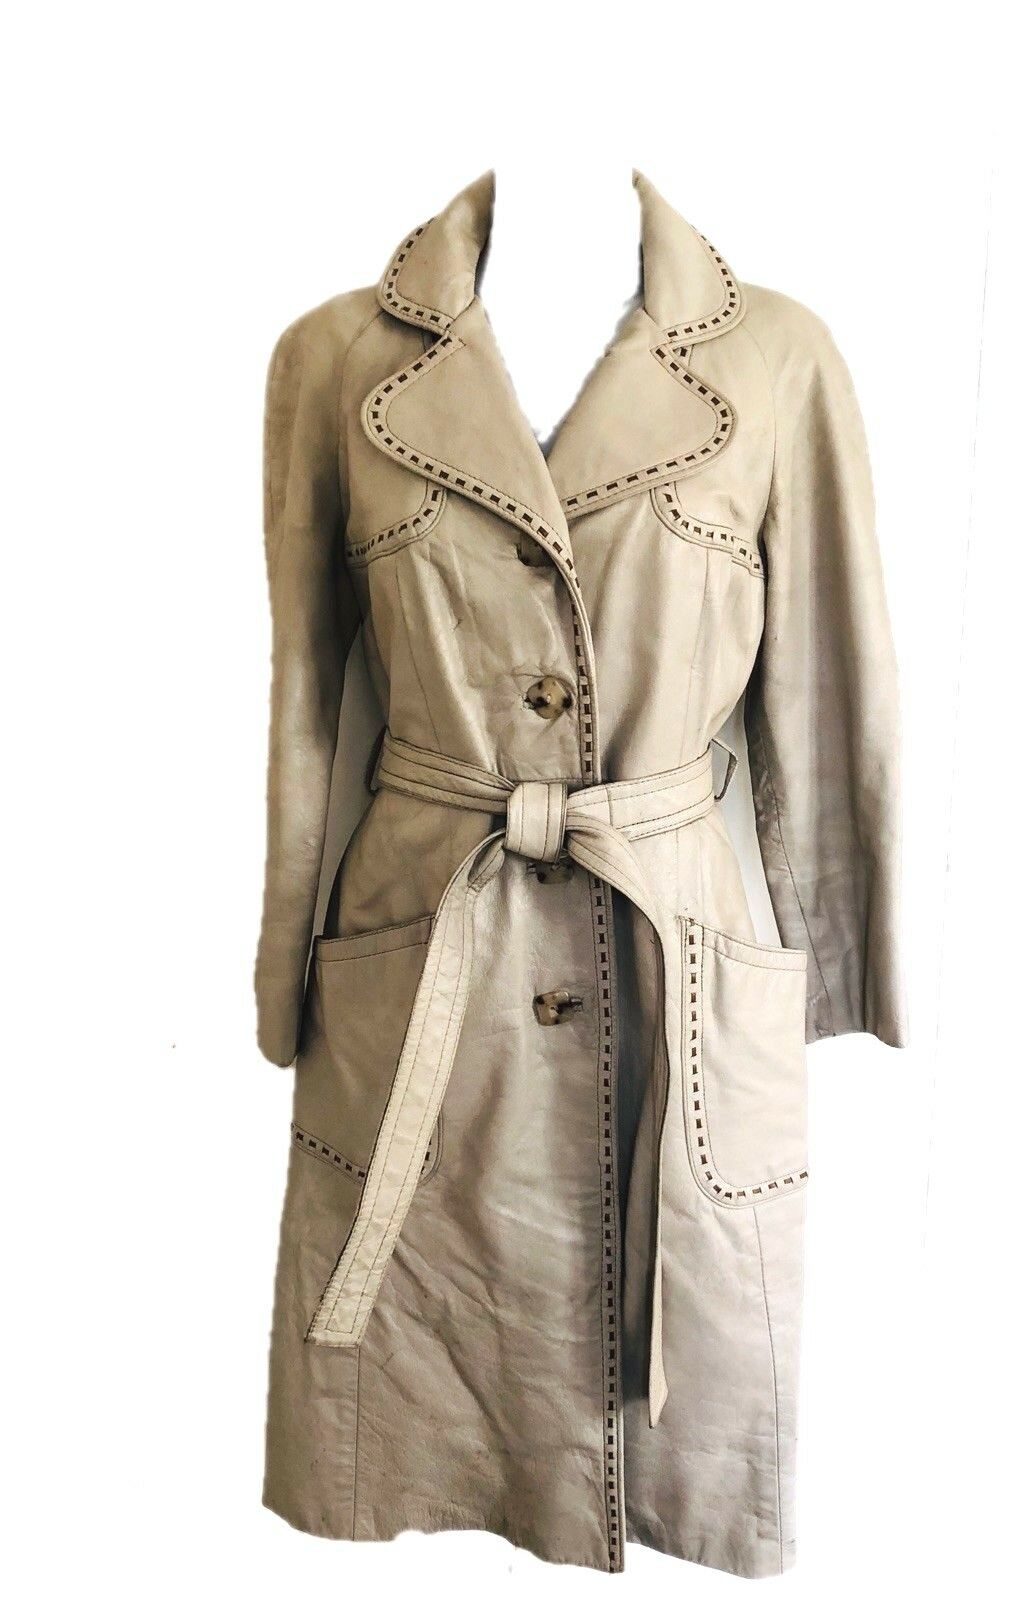 VTG. 24K LEATHER by DAN Di MODES IVORY LEATHER RIBBON STITCHED TRENCH COAT S M